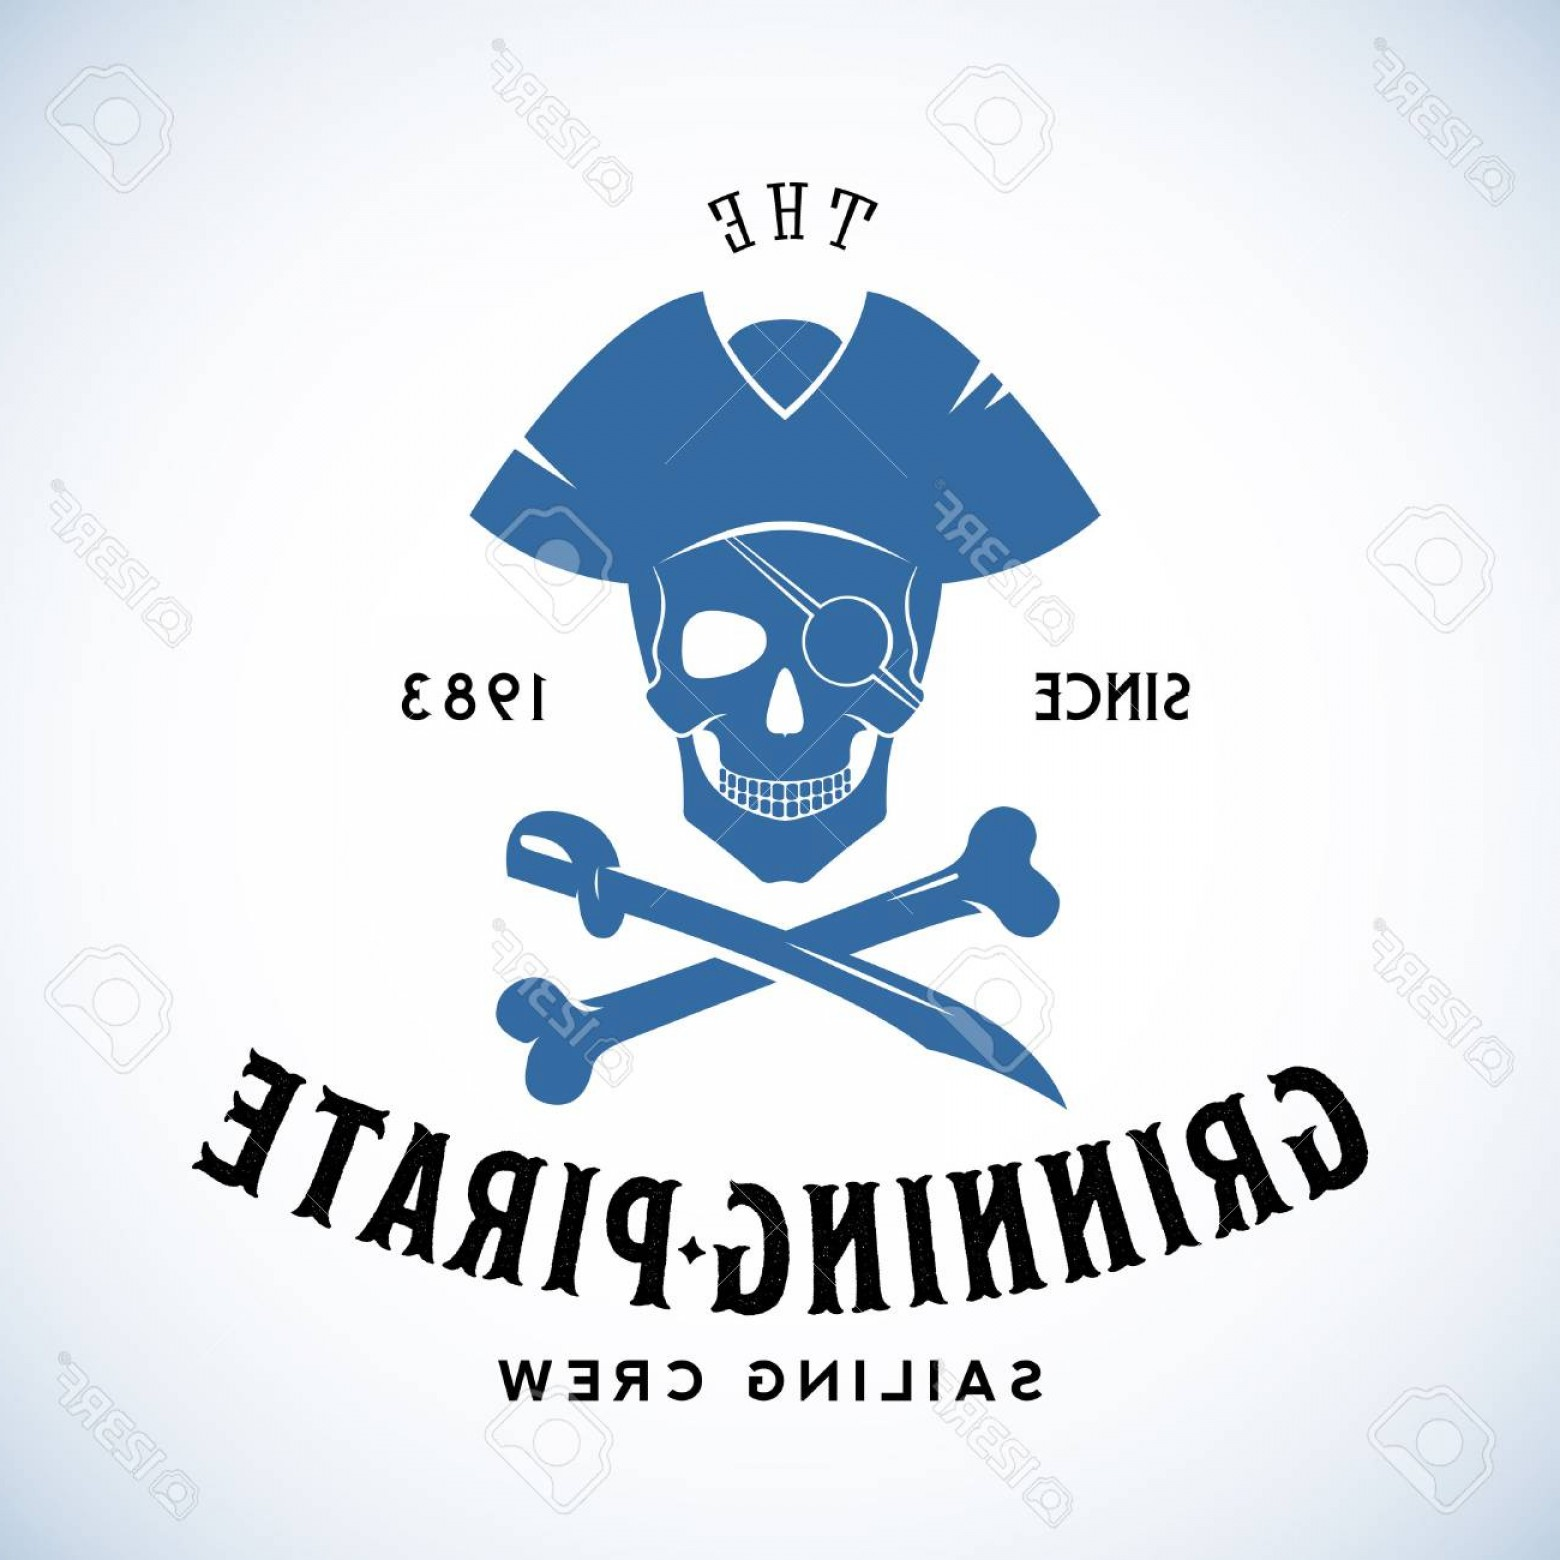 U S. Navy Shellback Logos Vector: Photostock Vector The Grinning Pirate Sailing Crew Abstract Vector Retro Logo Template Or Vintage Label With Typograph